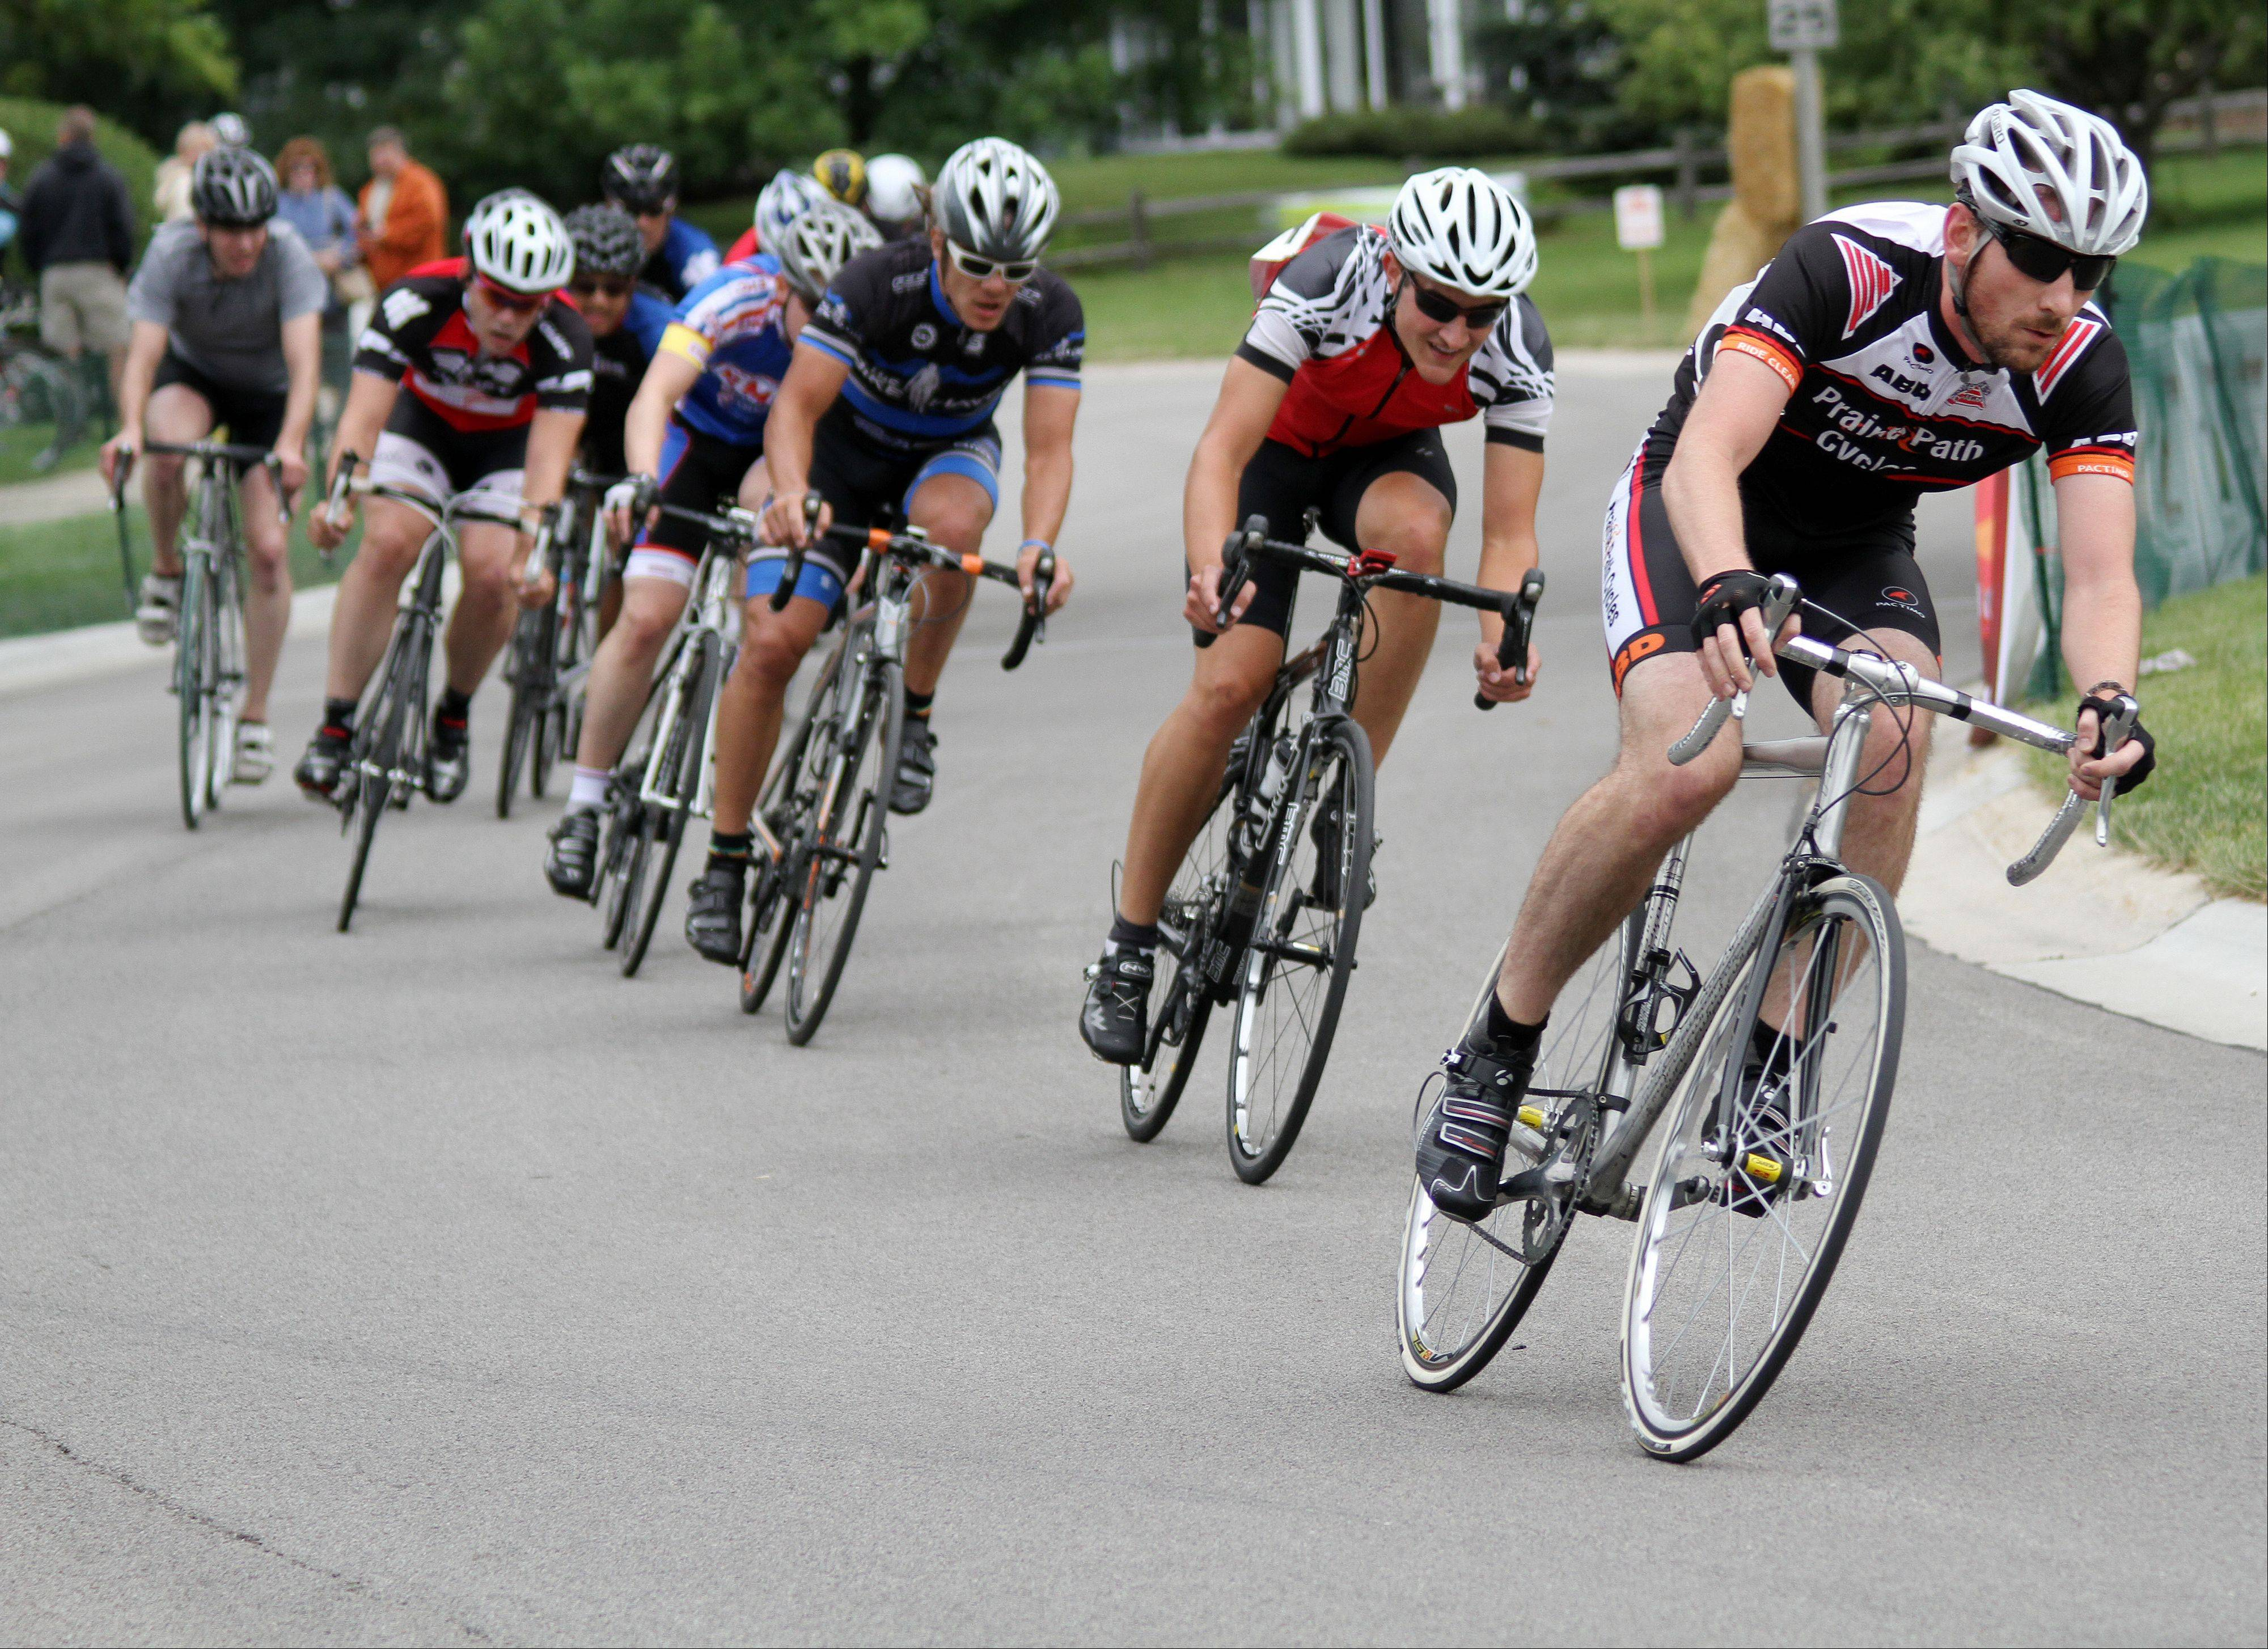 Riders in the category five race round a corner at the 2013 Winfield Criterium at Oakwood Park in Winfield on Sunday, July 28, 2013.